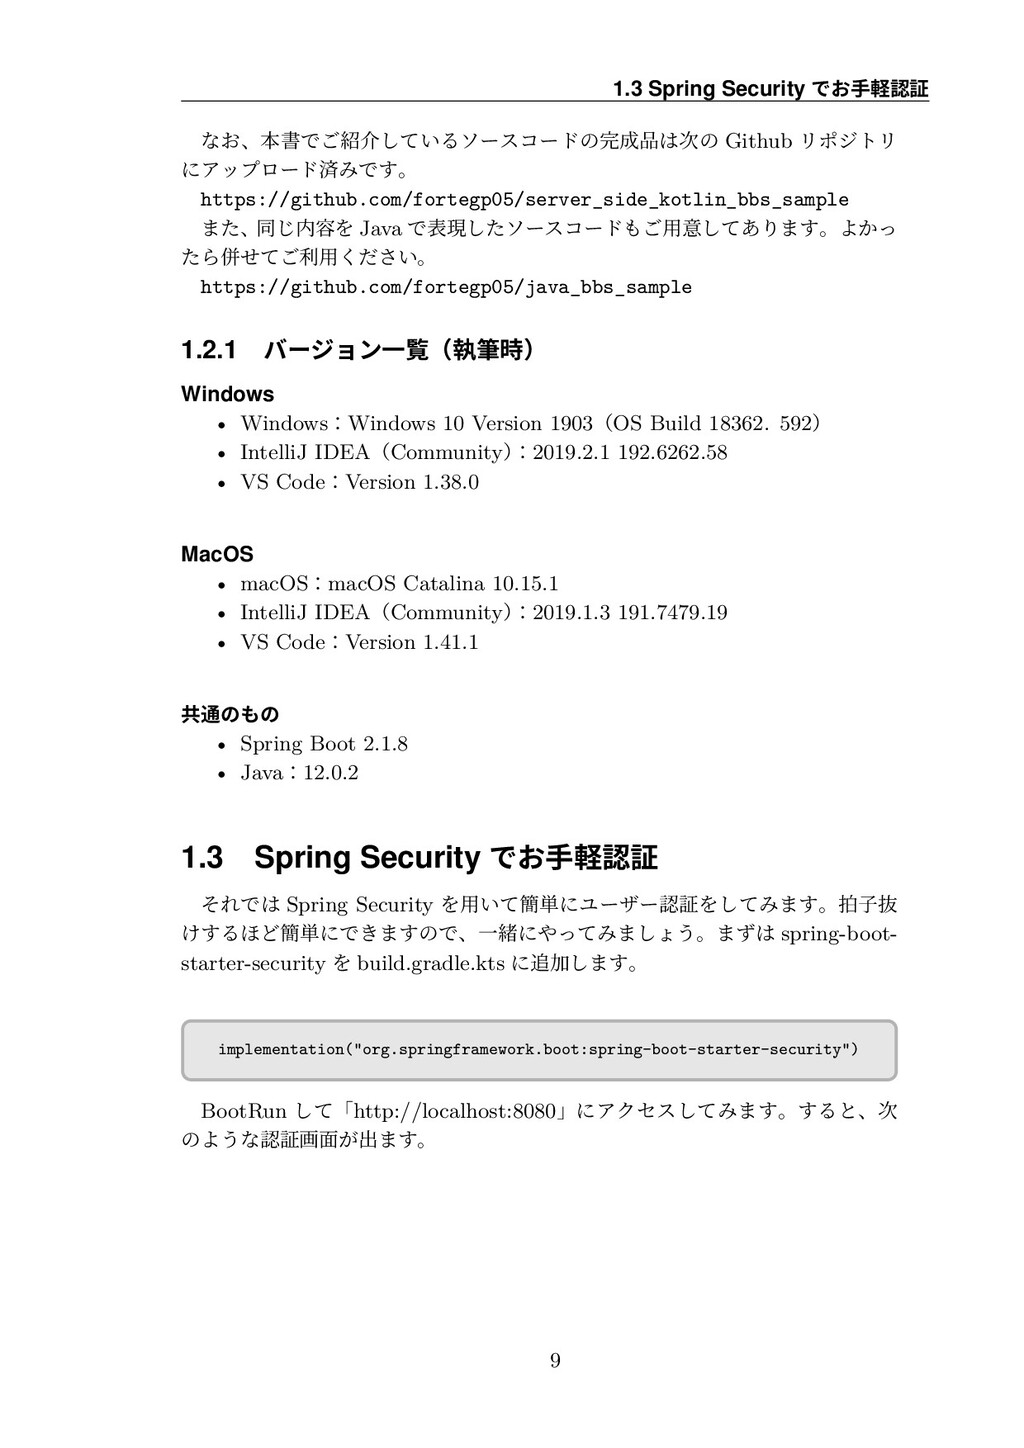 1.3 Spring Security דֶ䩛鯪钠鏾 םֽյ勓剹ךׇ箩♃׊יַ׾خ٭تؤ٭غס...